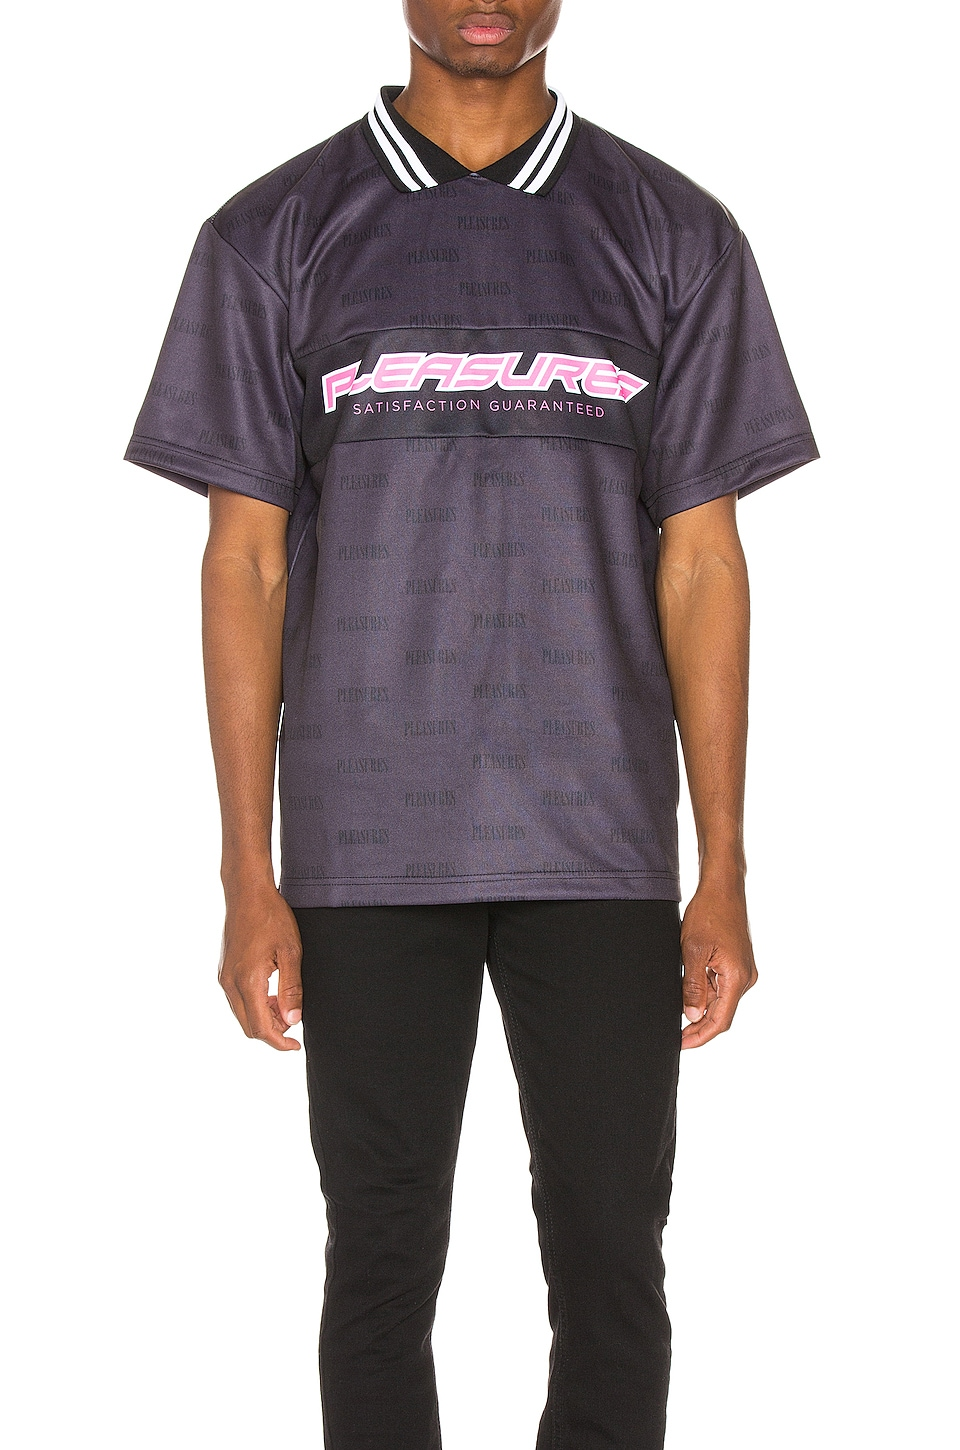 Pleasures Satisfaction Jersey in Black